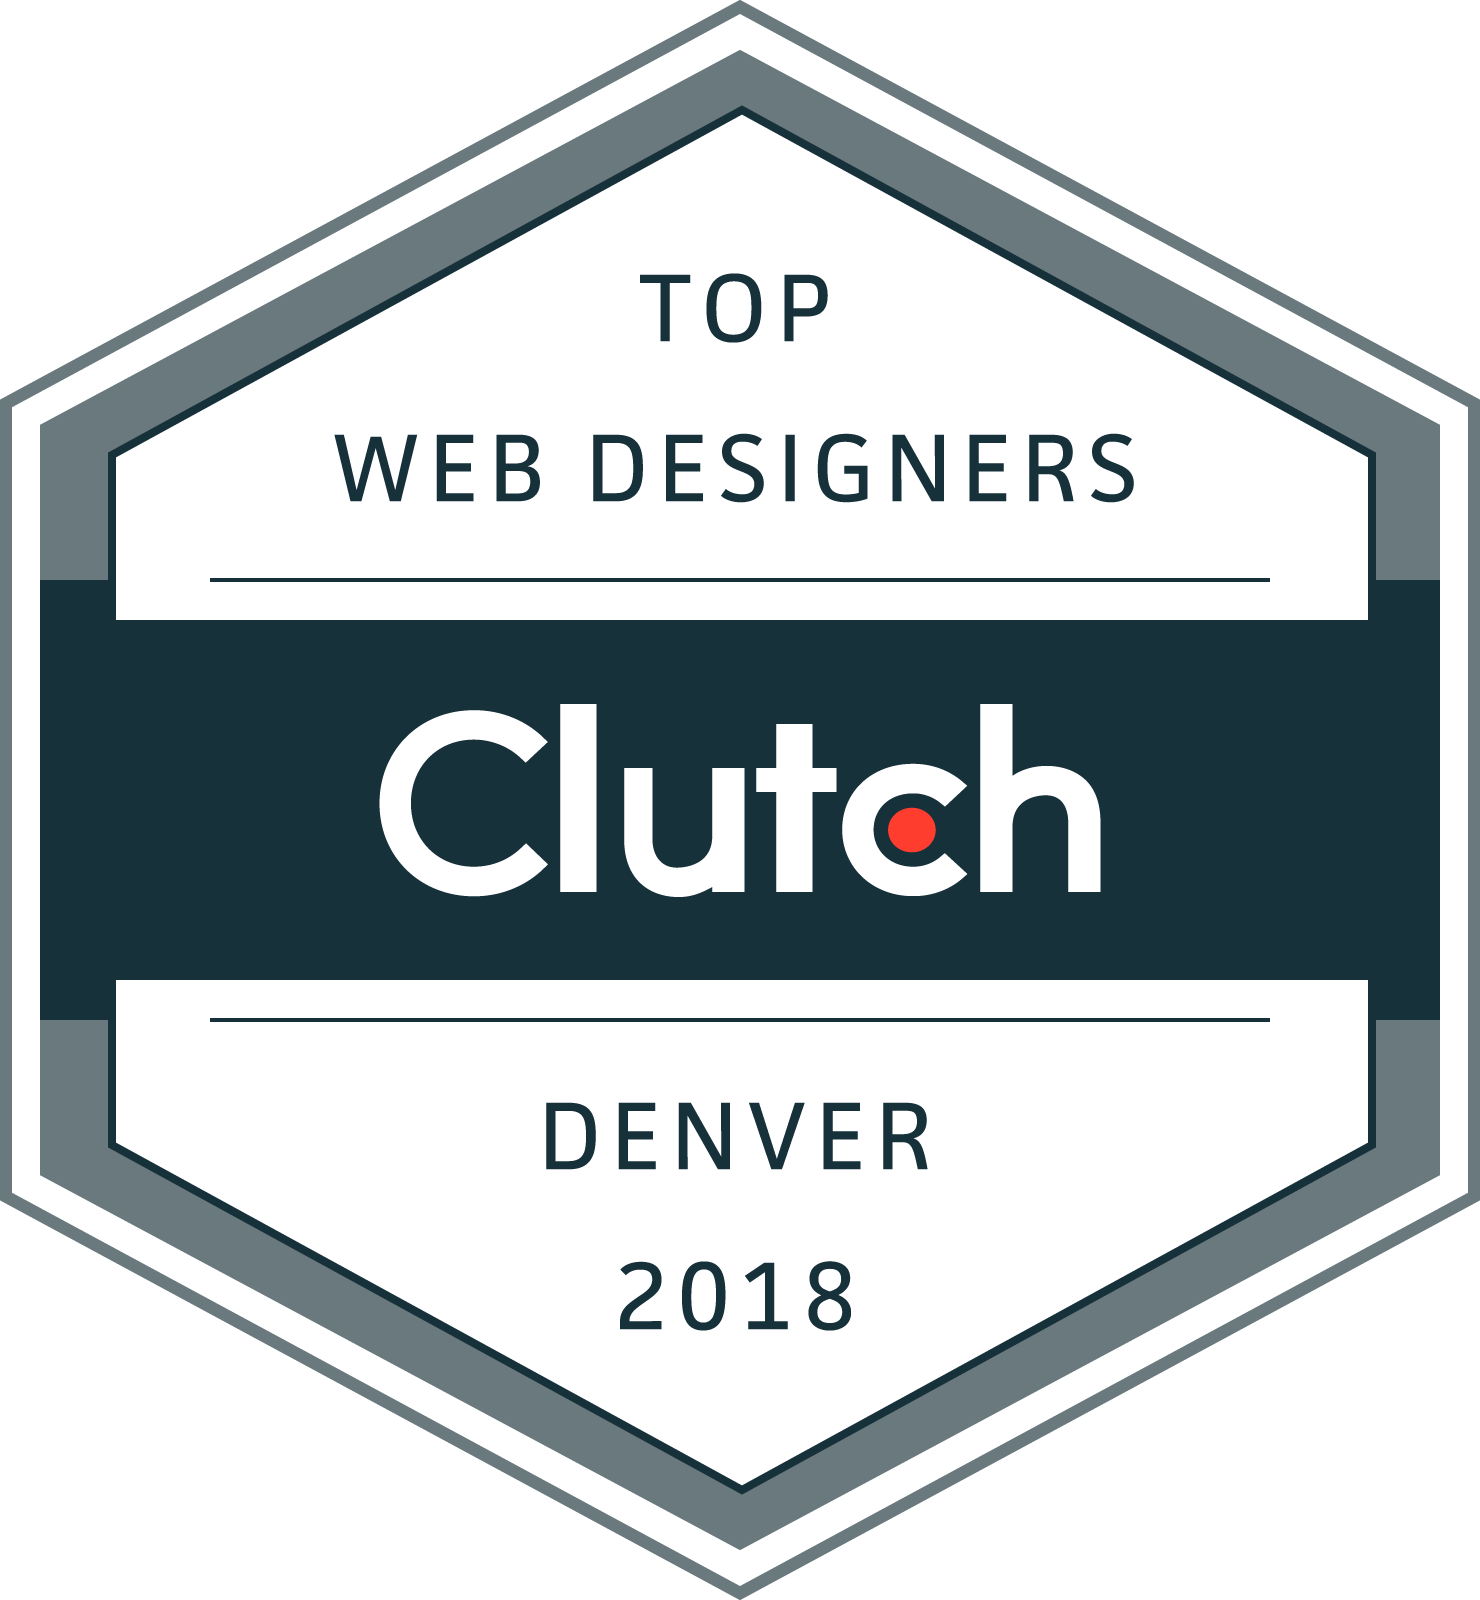 Clutch Top Denver Web Designers 2018 Award